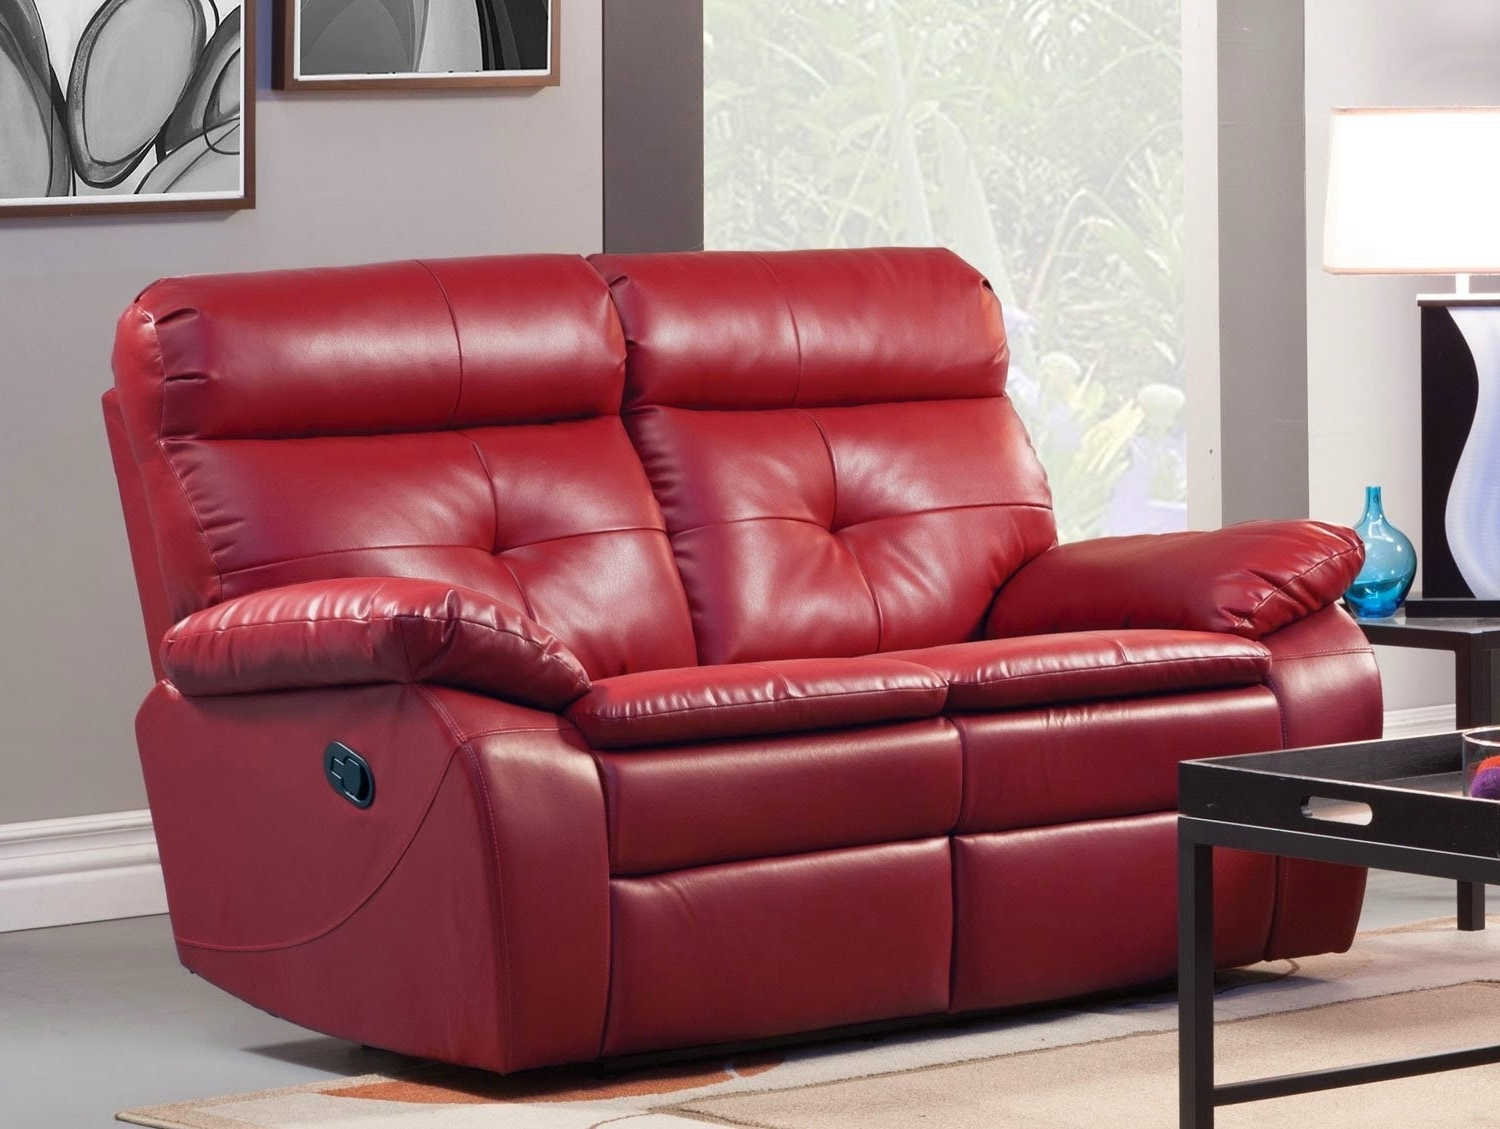 2 Seater Leather Recliner Sofa Sale | 2 Seat Reclining Leather Sofa ...